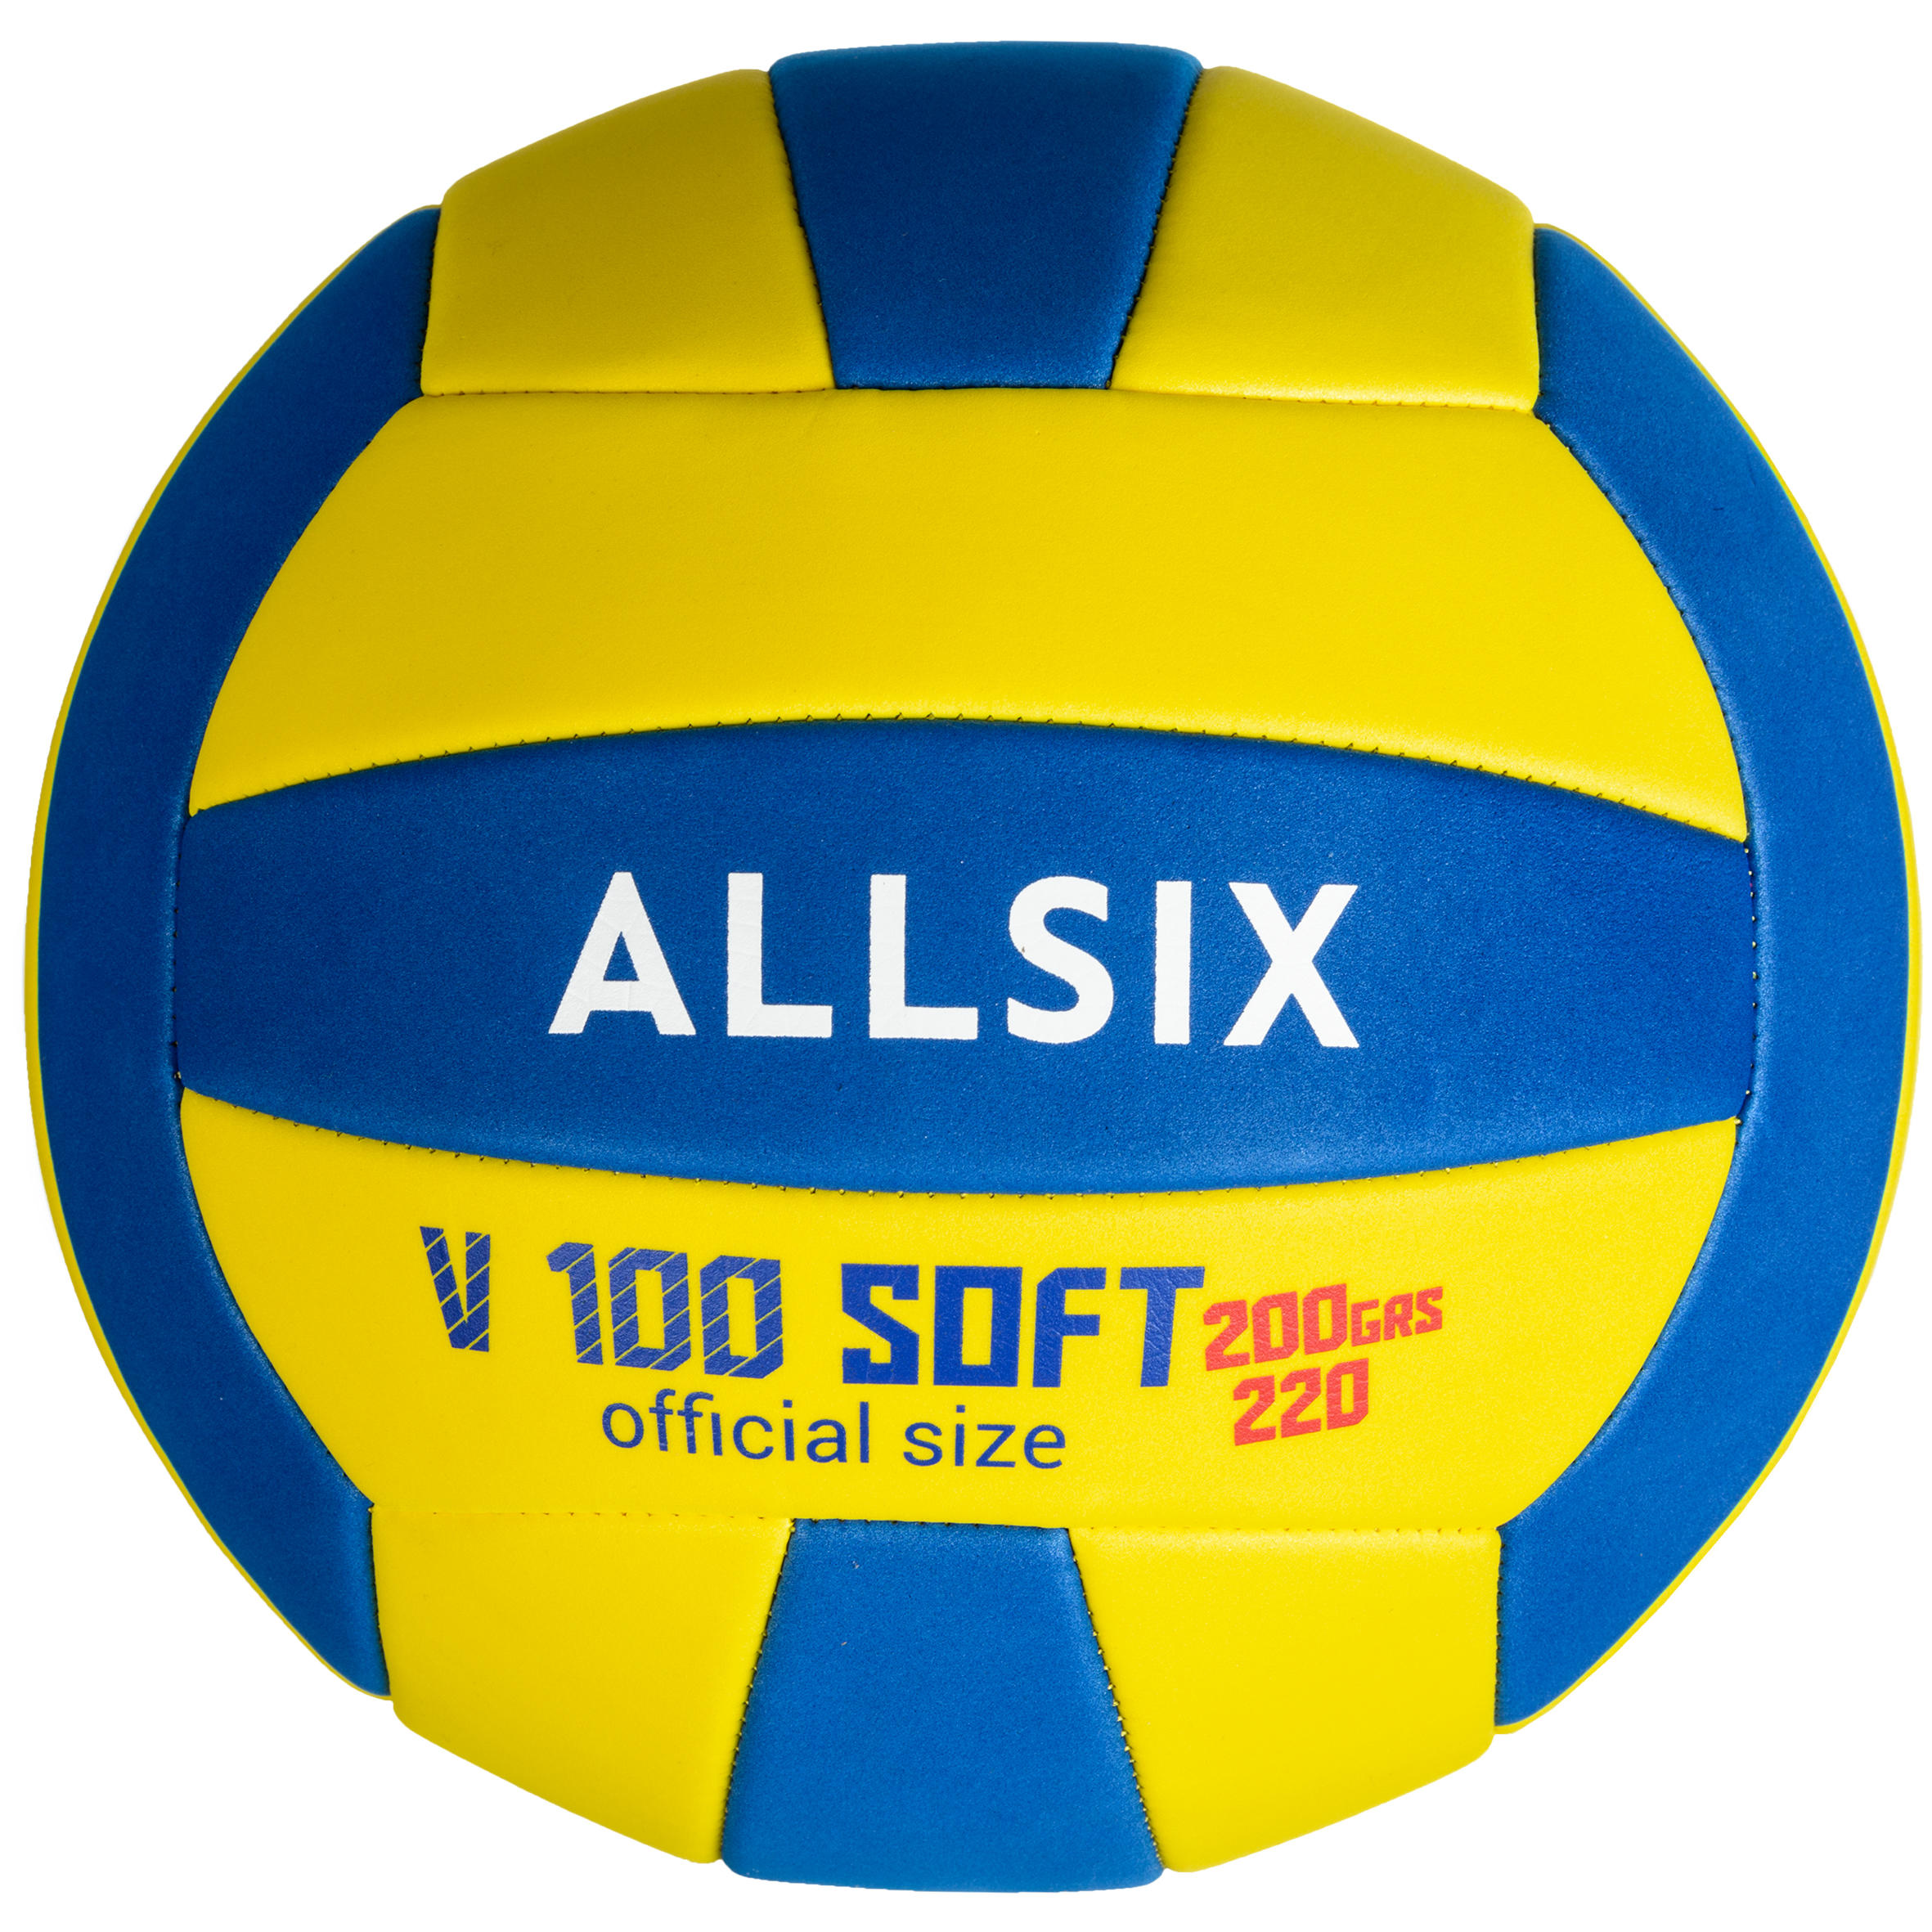 Minge volei V100 SOFT imagine